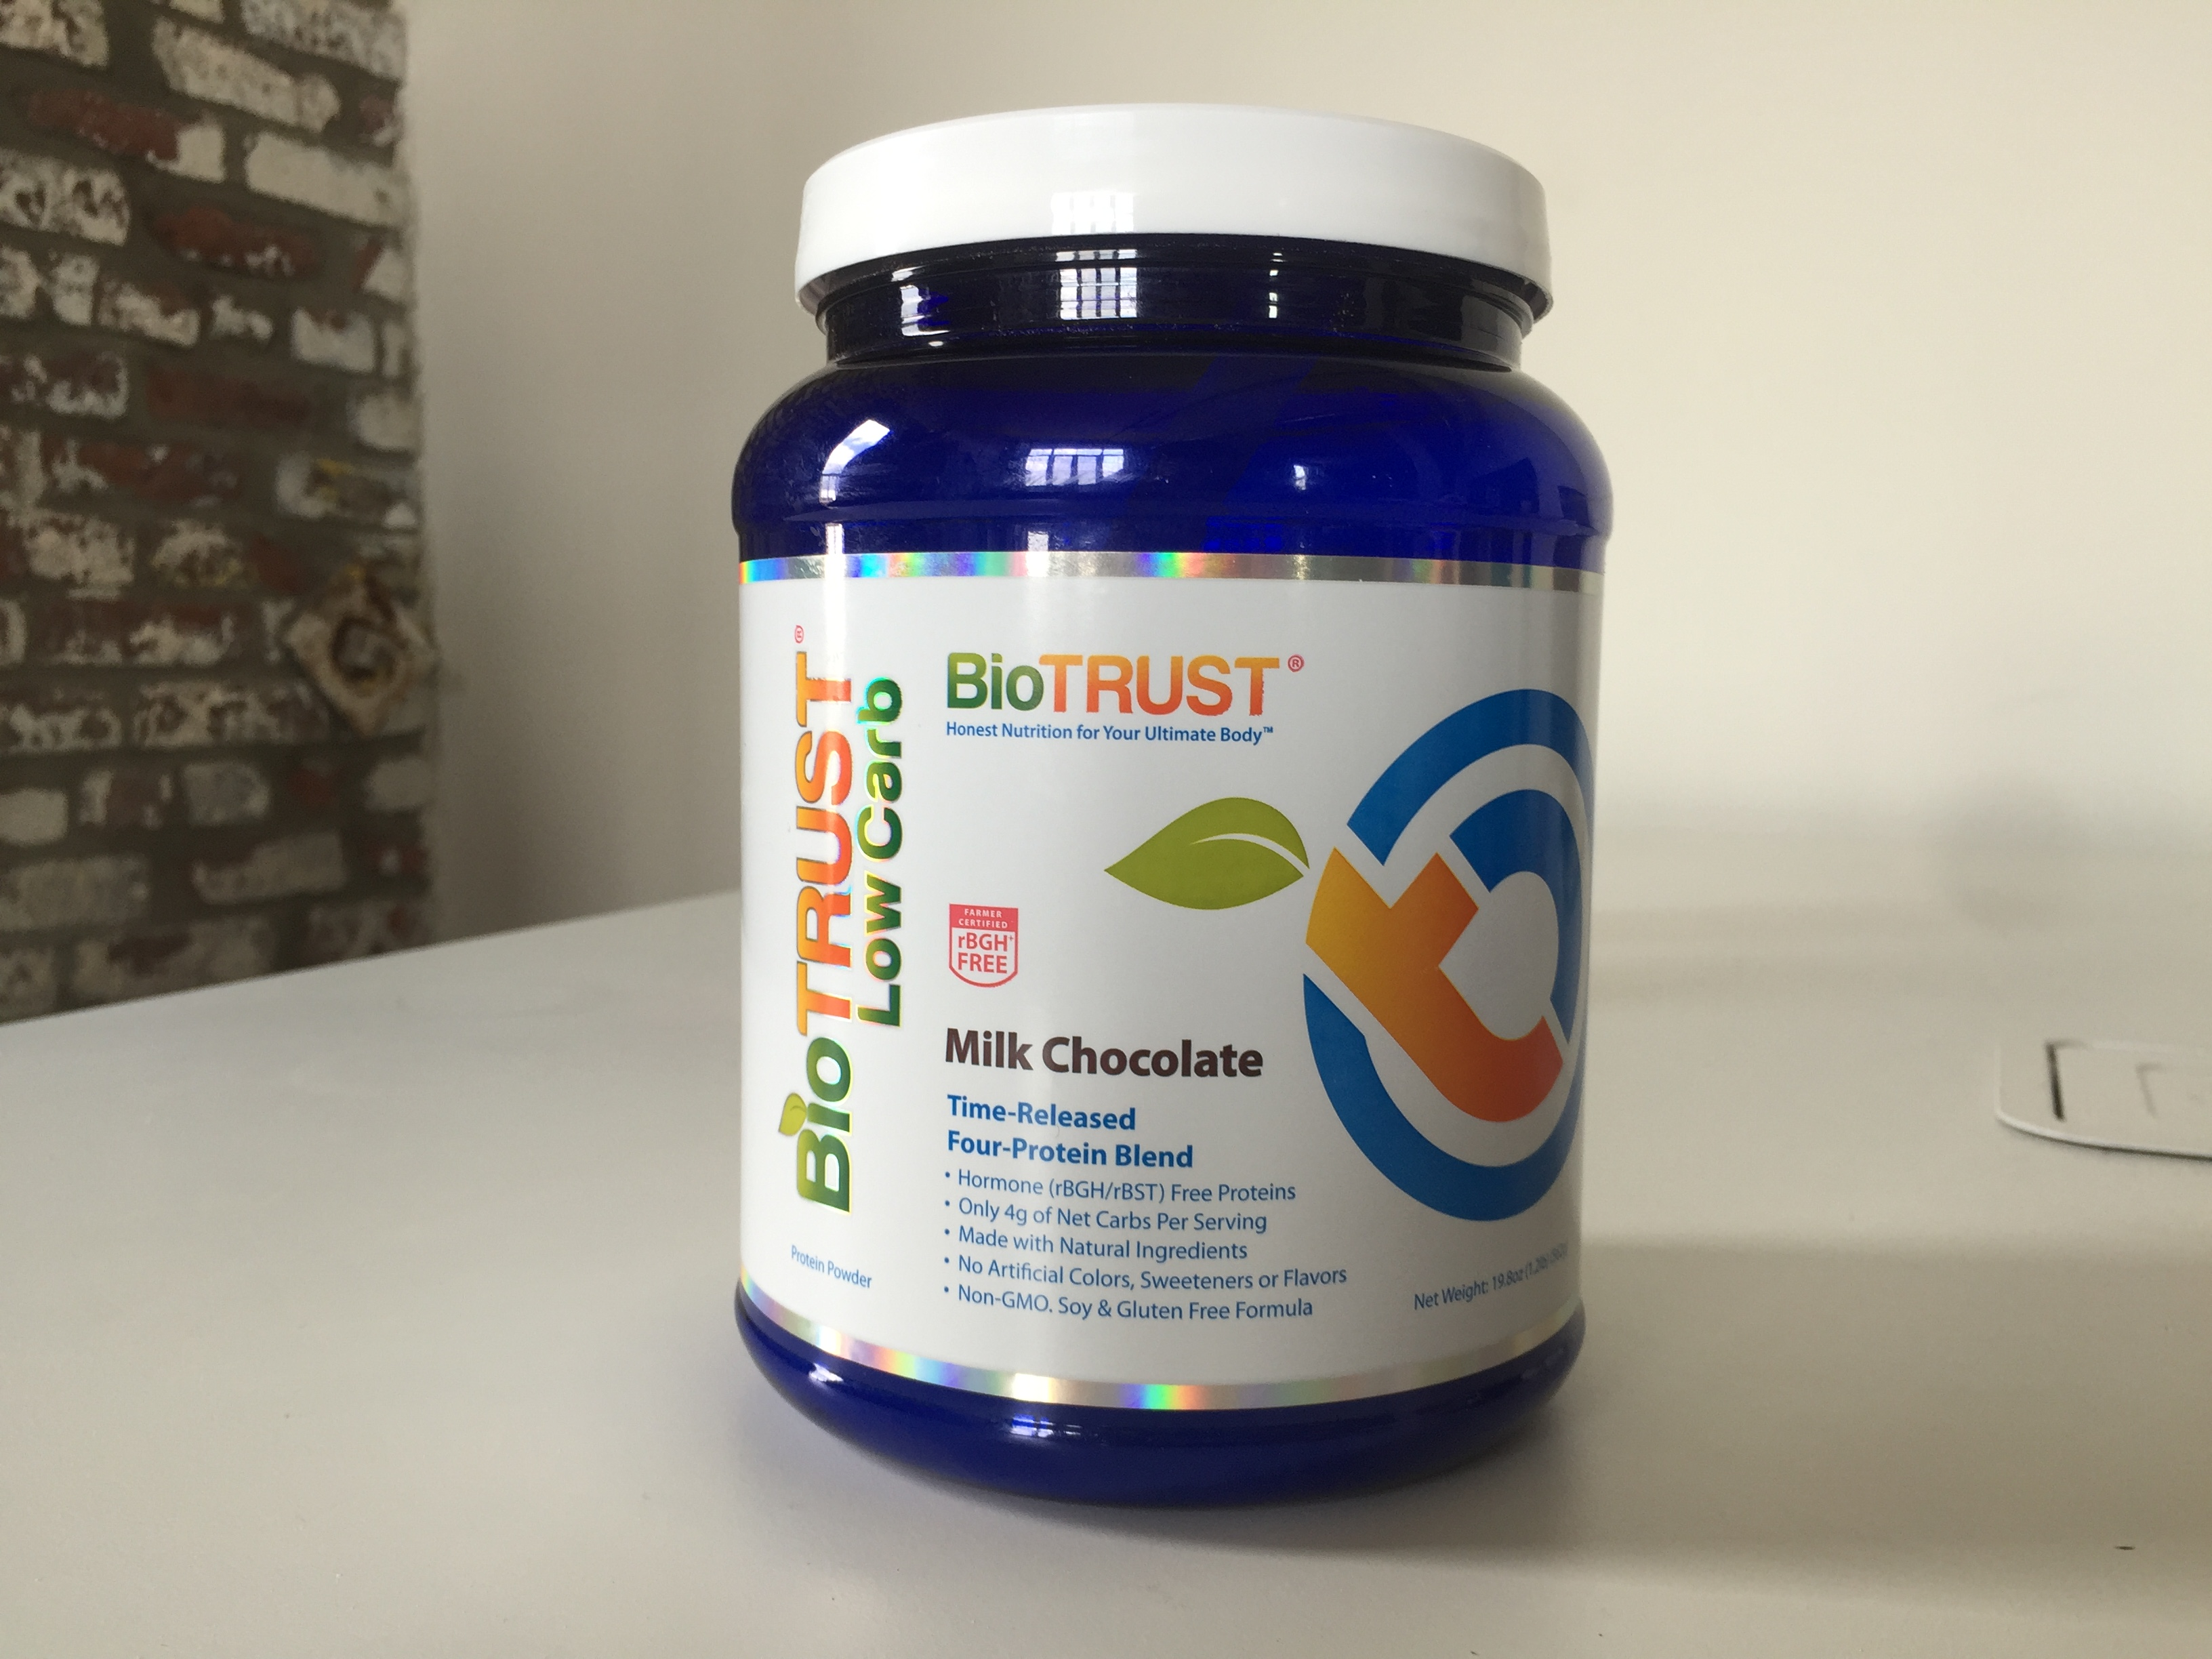 BioTrust Low Carb Protein Review